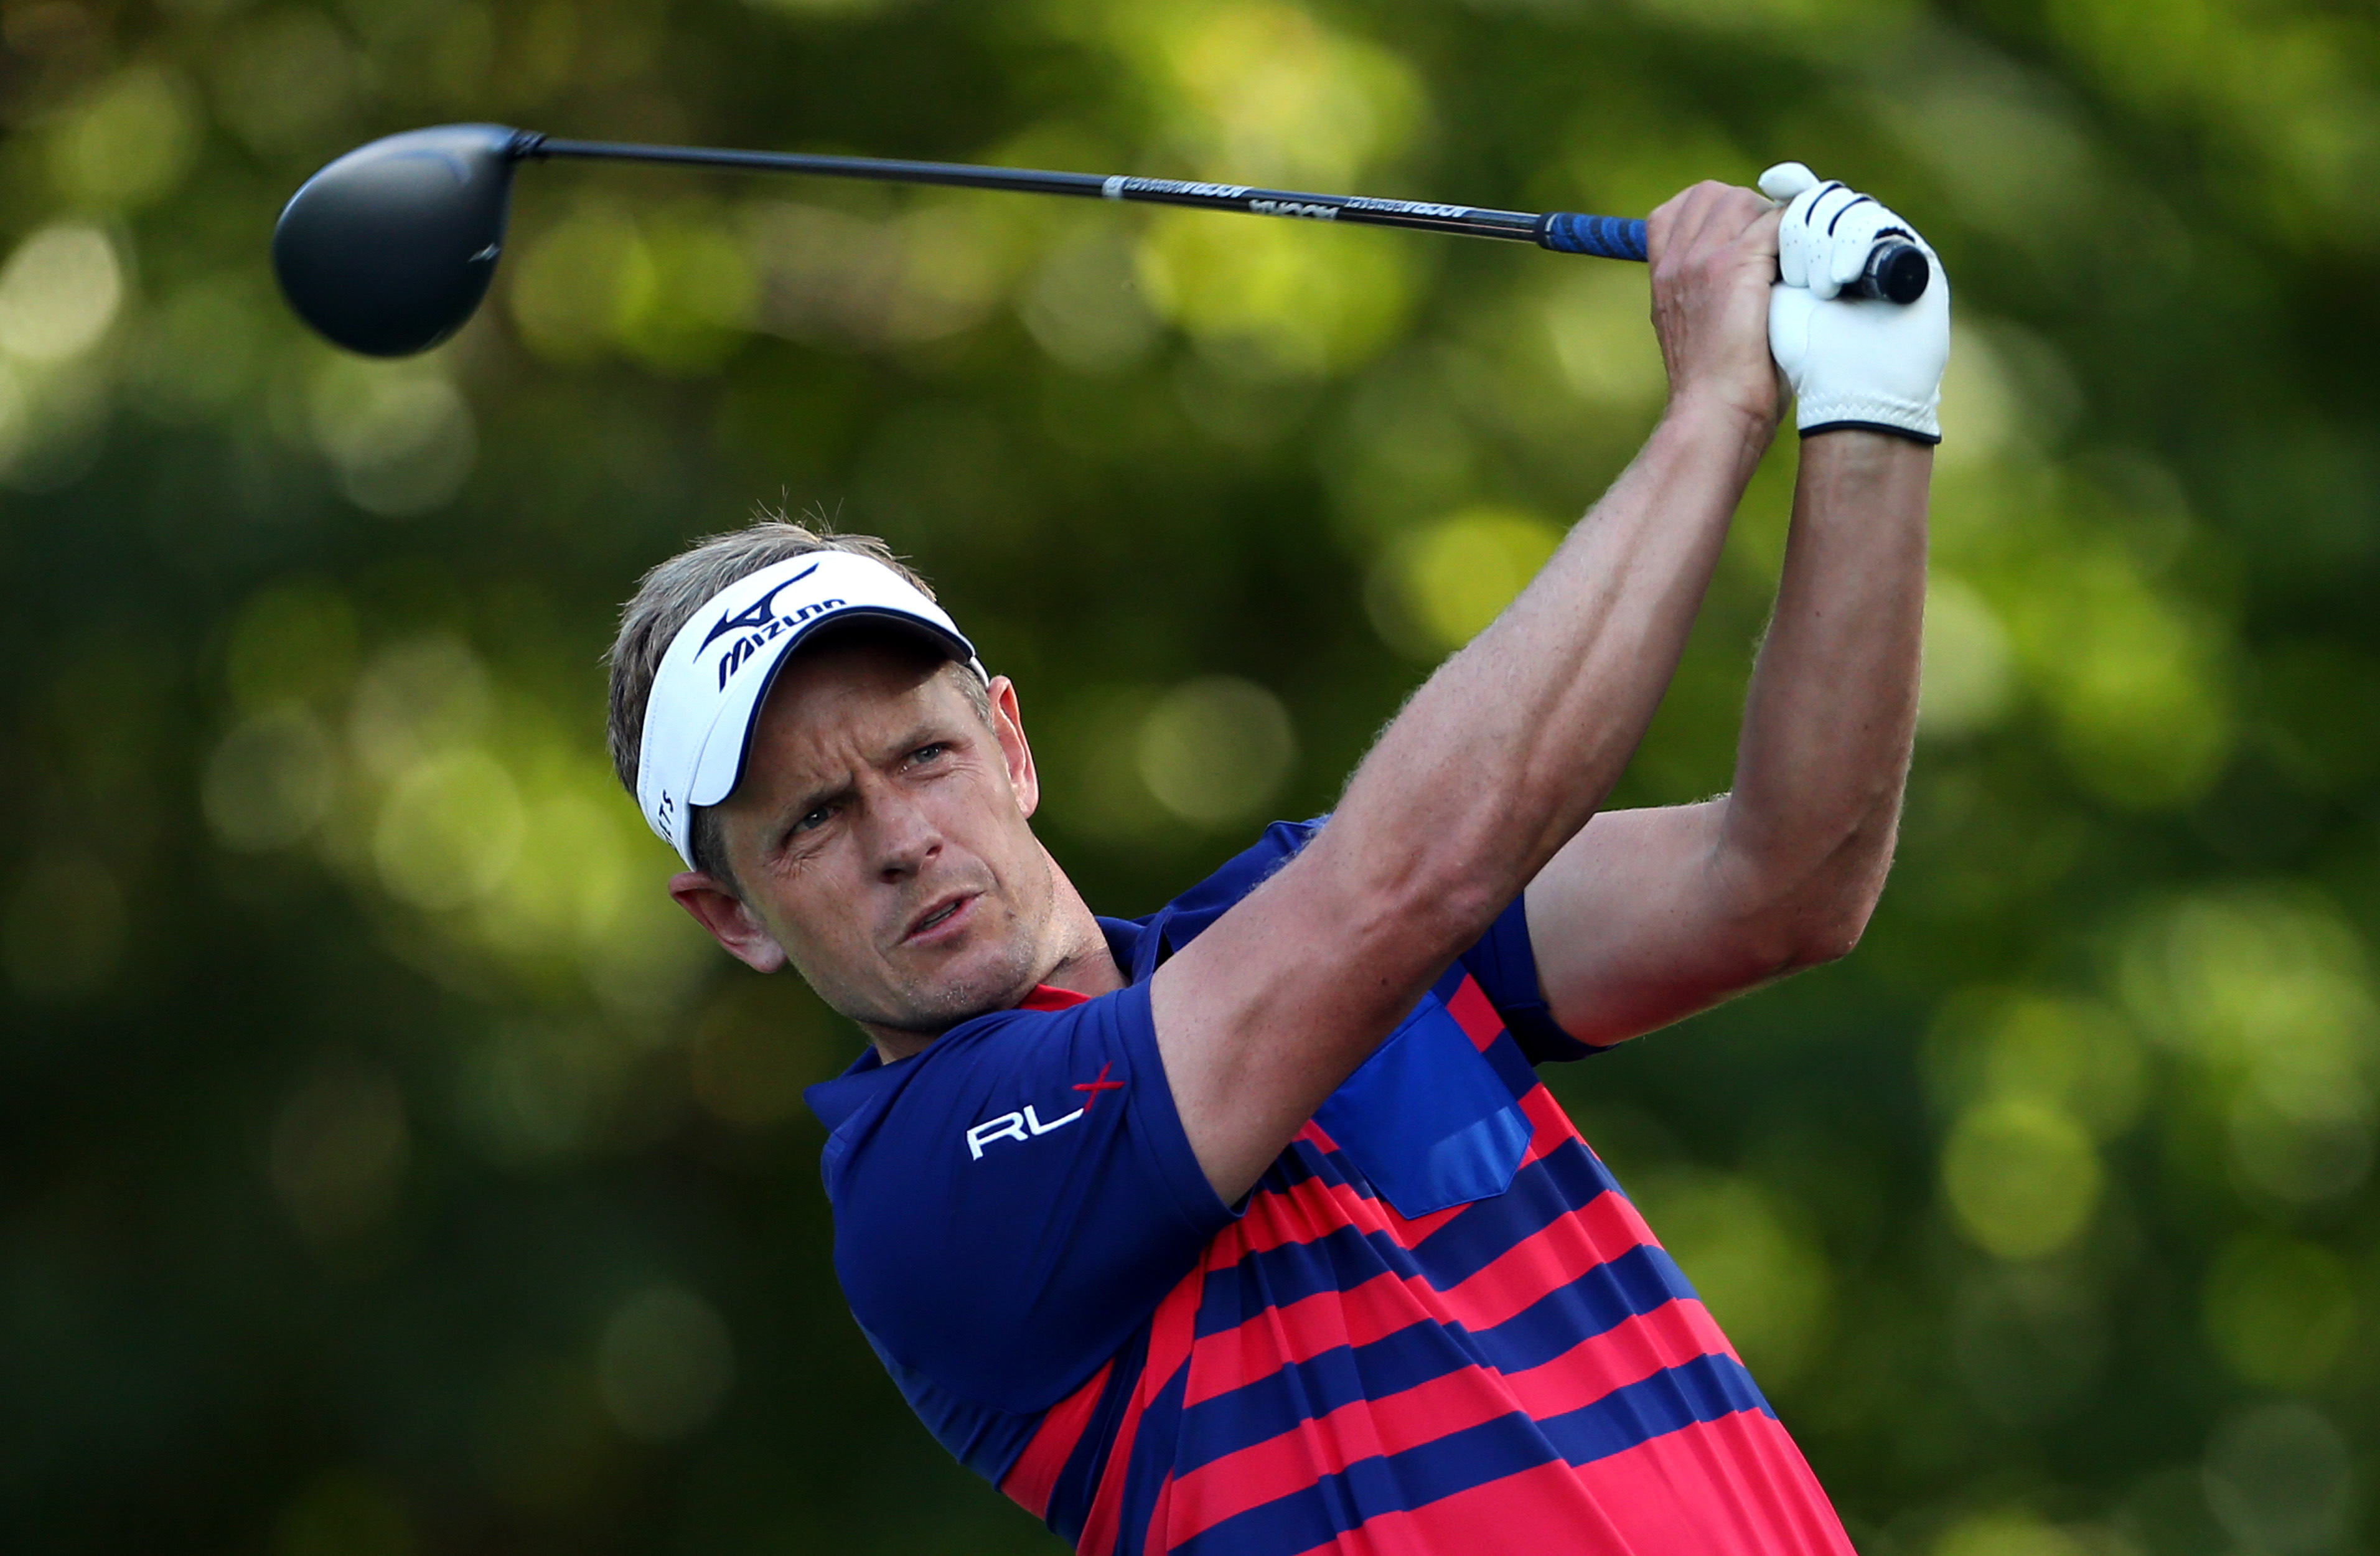 Luke Donald, of England, tees off on the fifth hole during the first round of play at The Barclays golf tournament Thursday, Aug. 27, 2015, in Edison, N.J. (AP Photo/Adam Hunger)